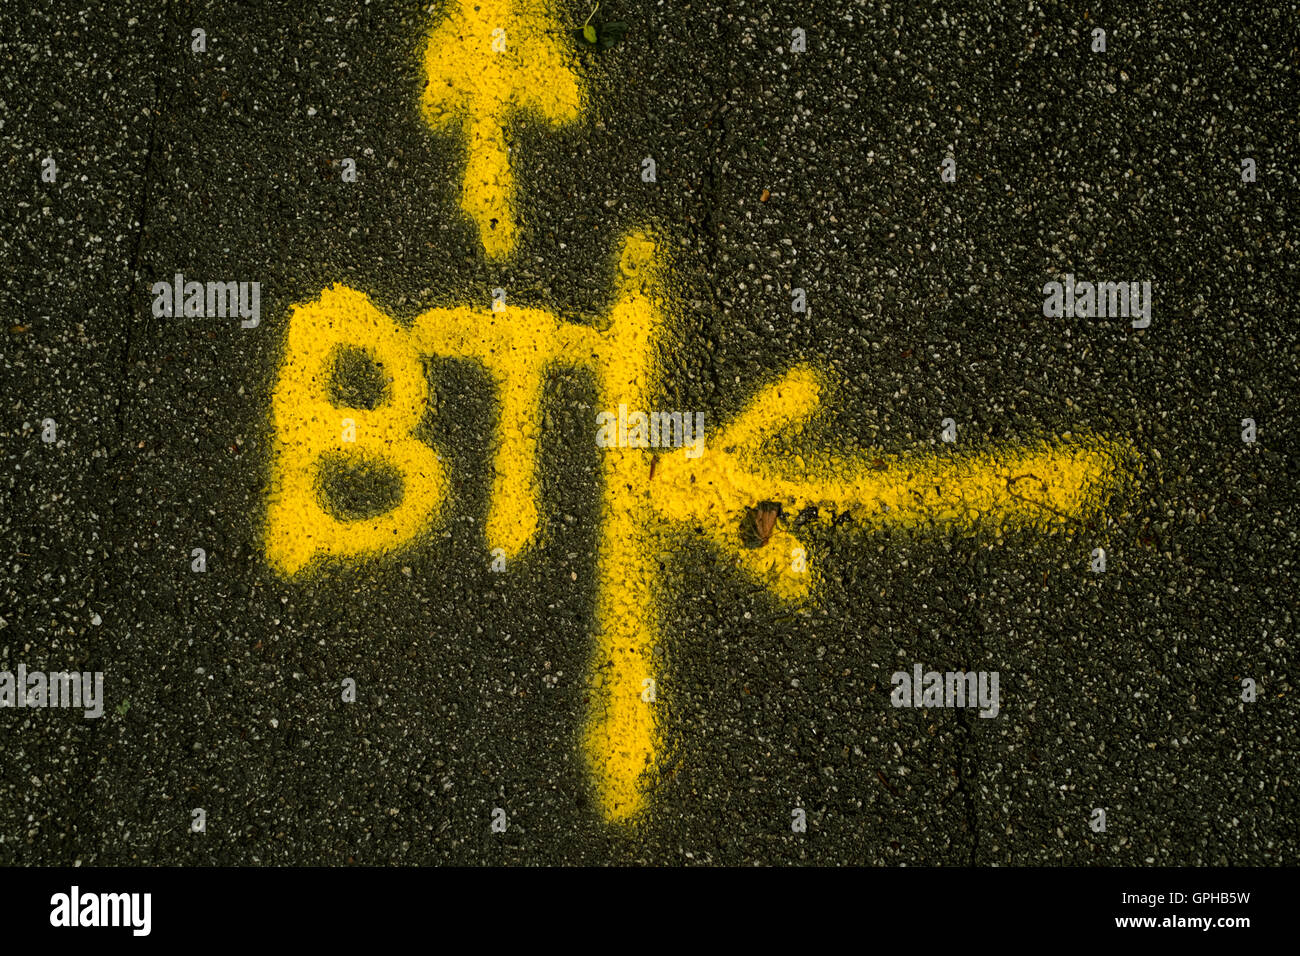 Markings on the pavement to indicate to BT engineers to carry out work - Stock Image